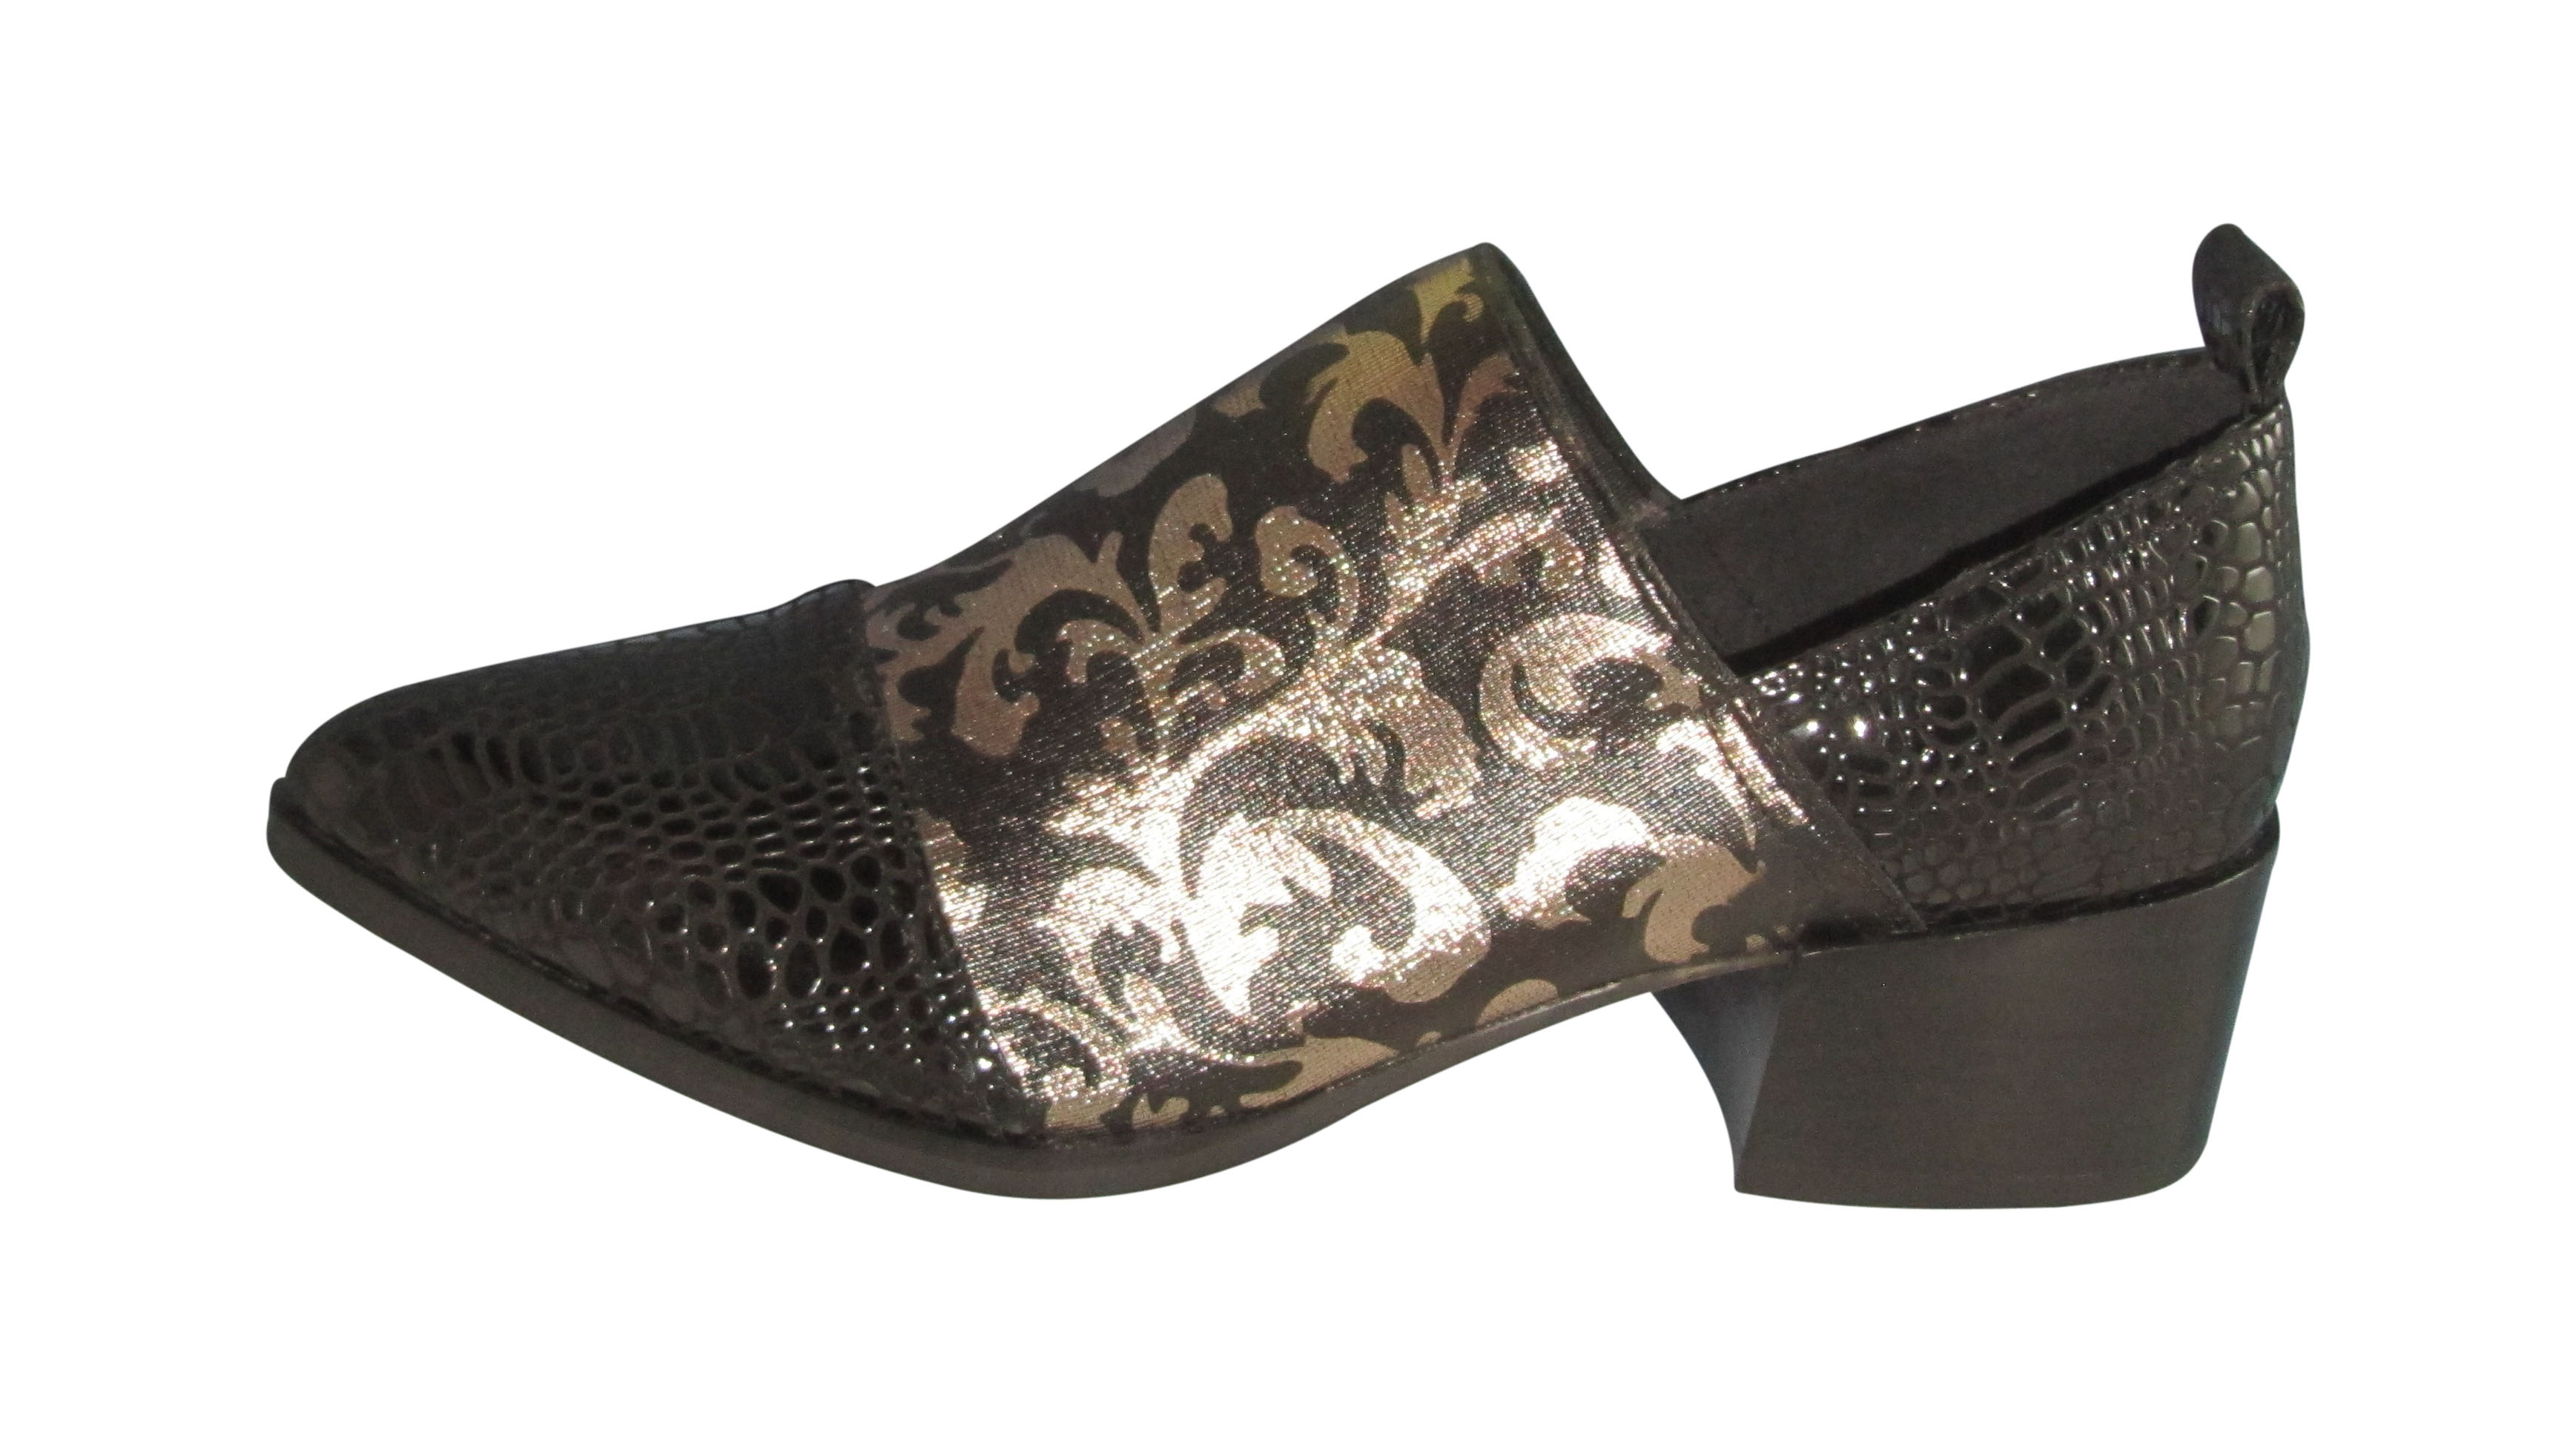 DA VINCI MINX - WOMENS SHOES-INFORMAL   Shirley s Shoes - AW19 MINX 6f665aed5a